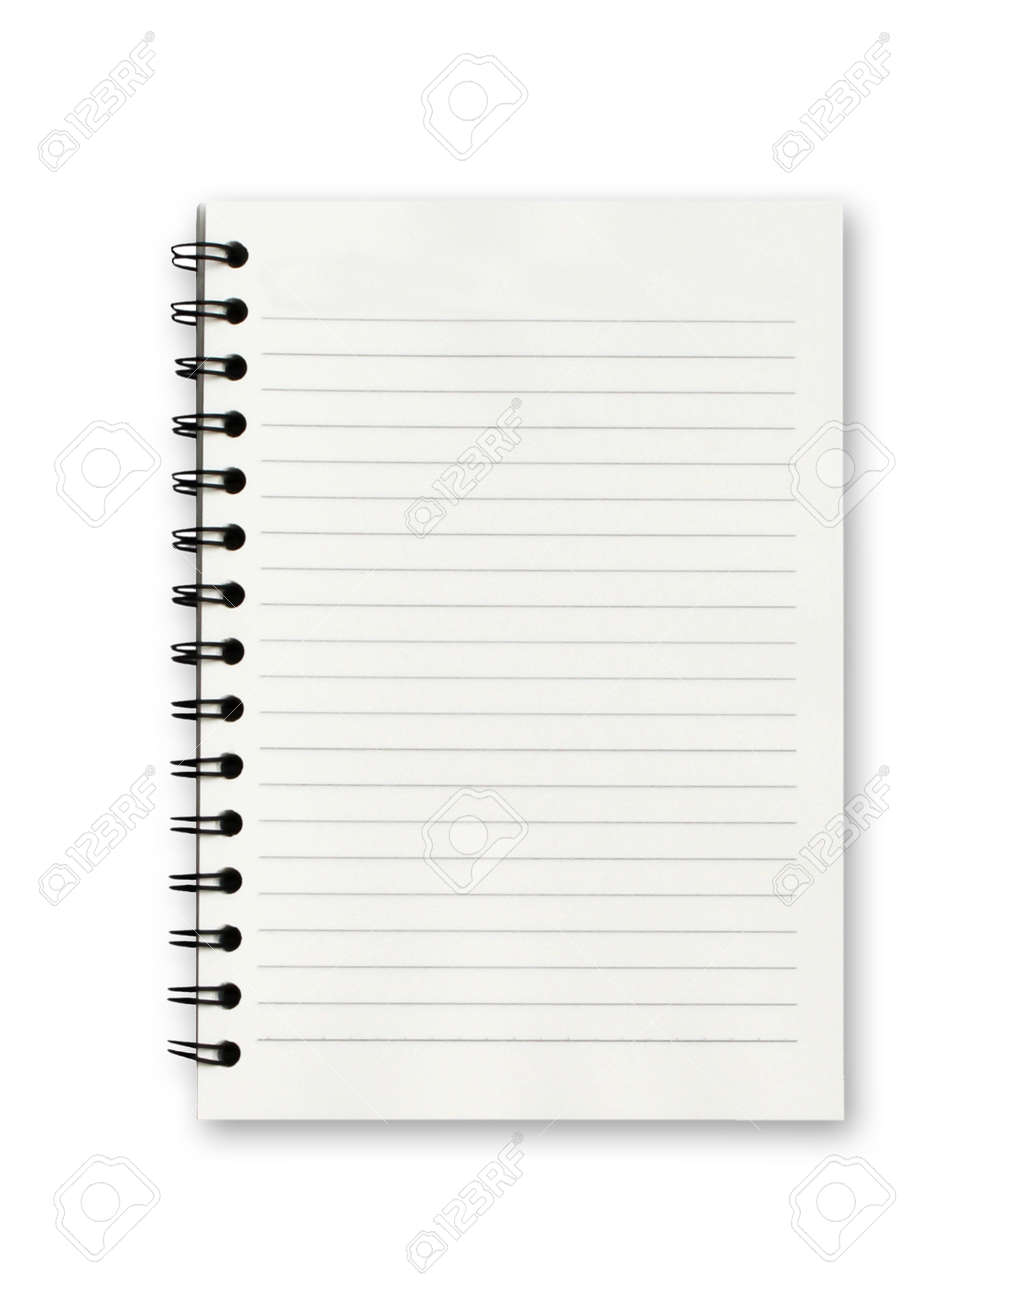 Blank notebook on white background. - 131441584